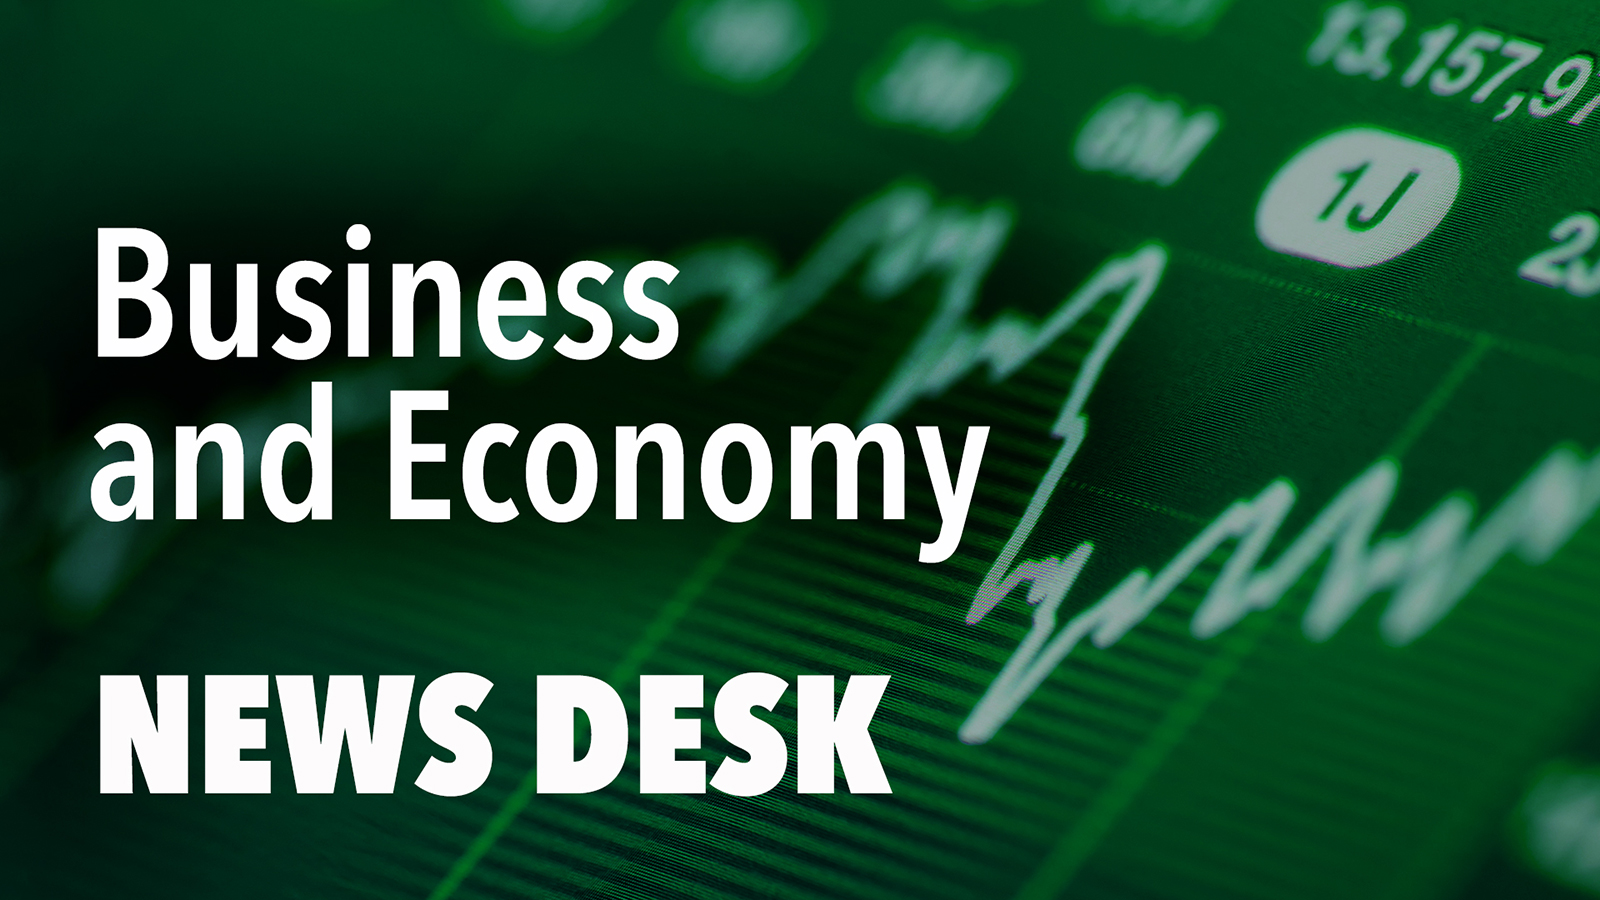 <b>Business and Economy News Desk</b>